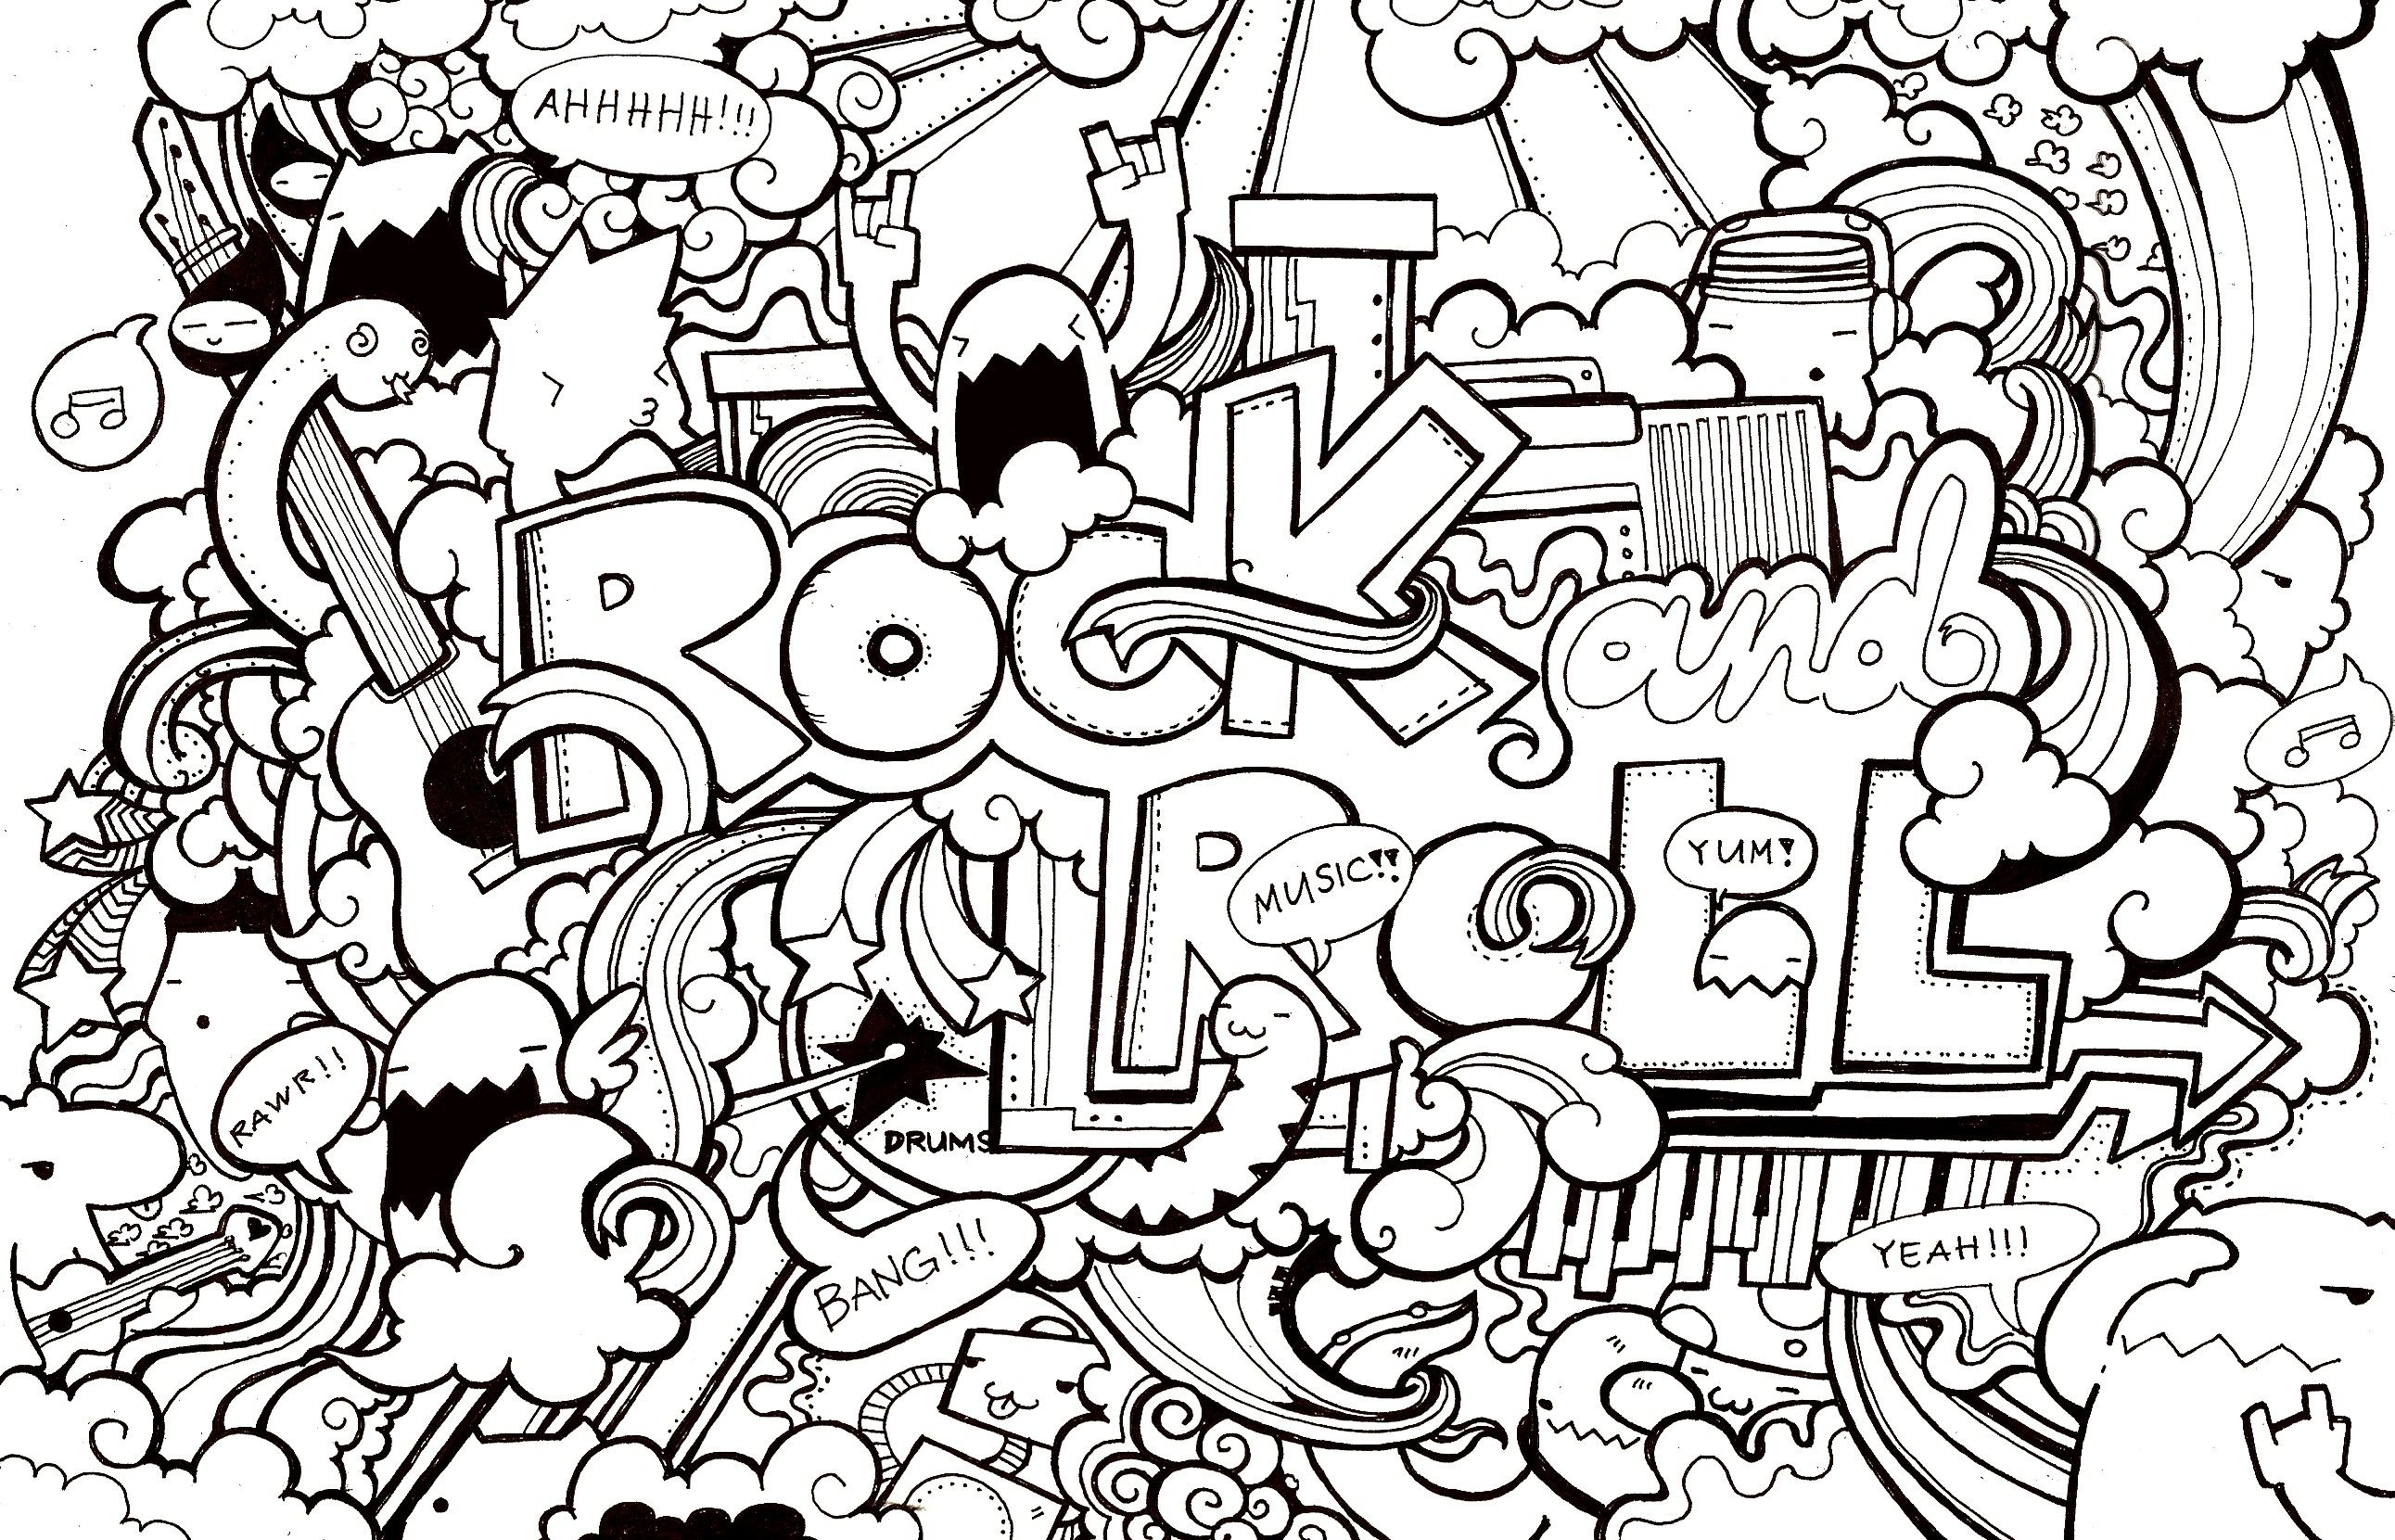 Coloring Page For Older Kids You Know The Ones Who Think They Re